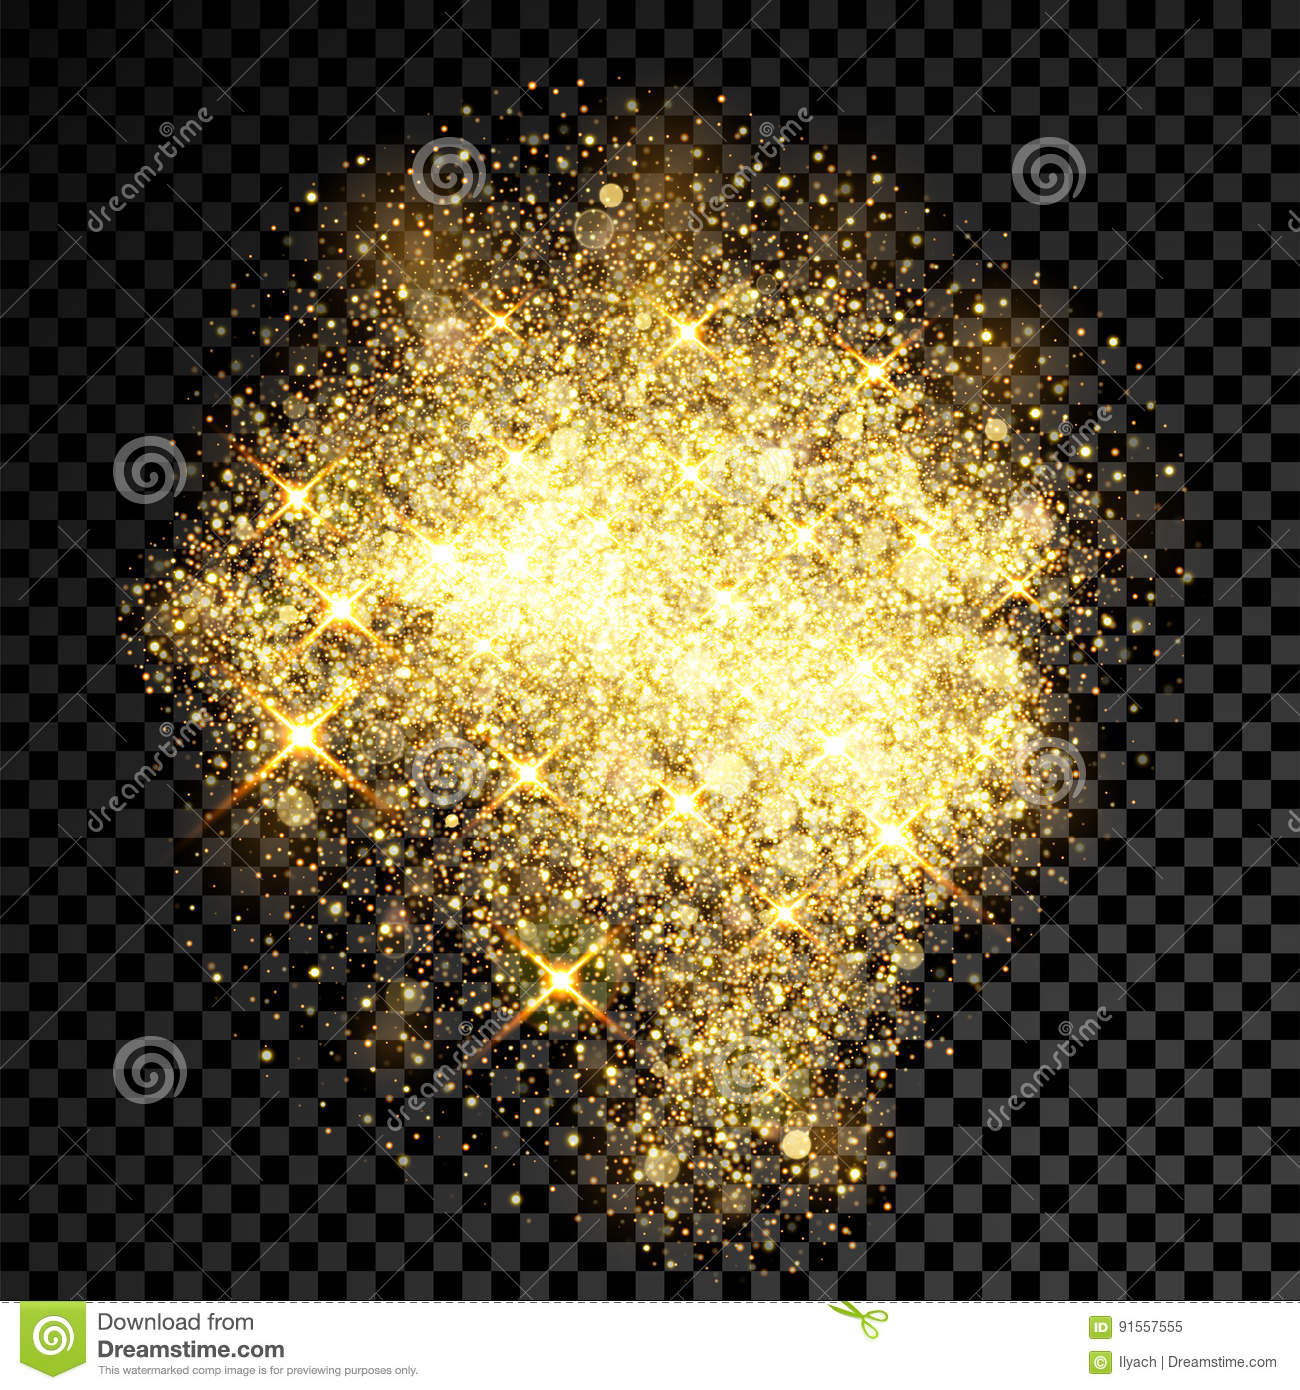 Gold glitter bright vector transparent background golden sparkles - Gold Glitter Spray Effect Of Sparkling Particles On Vector Transparent Background Royalty Free Stock Photo